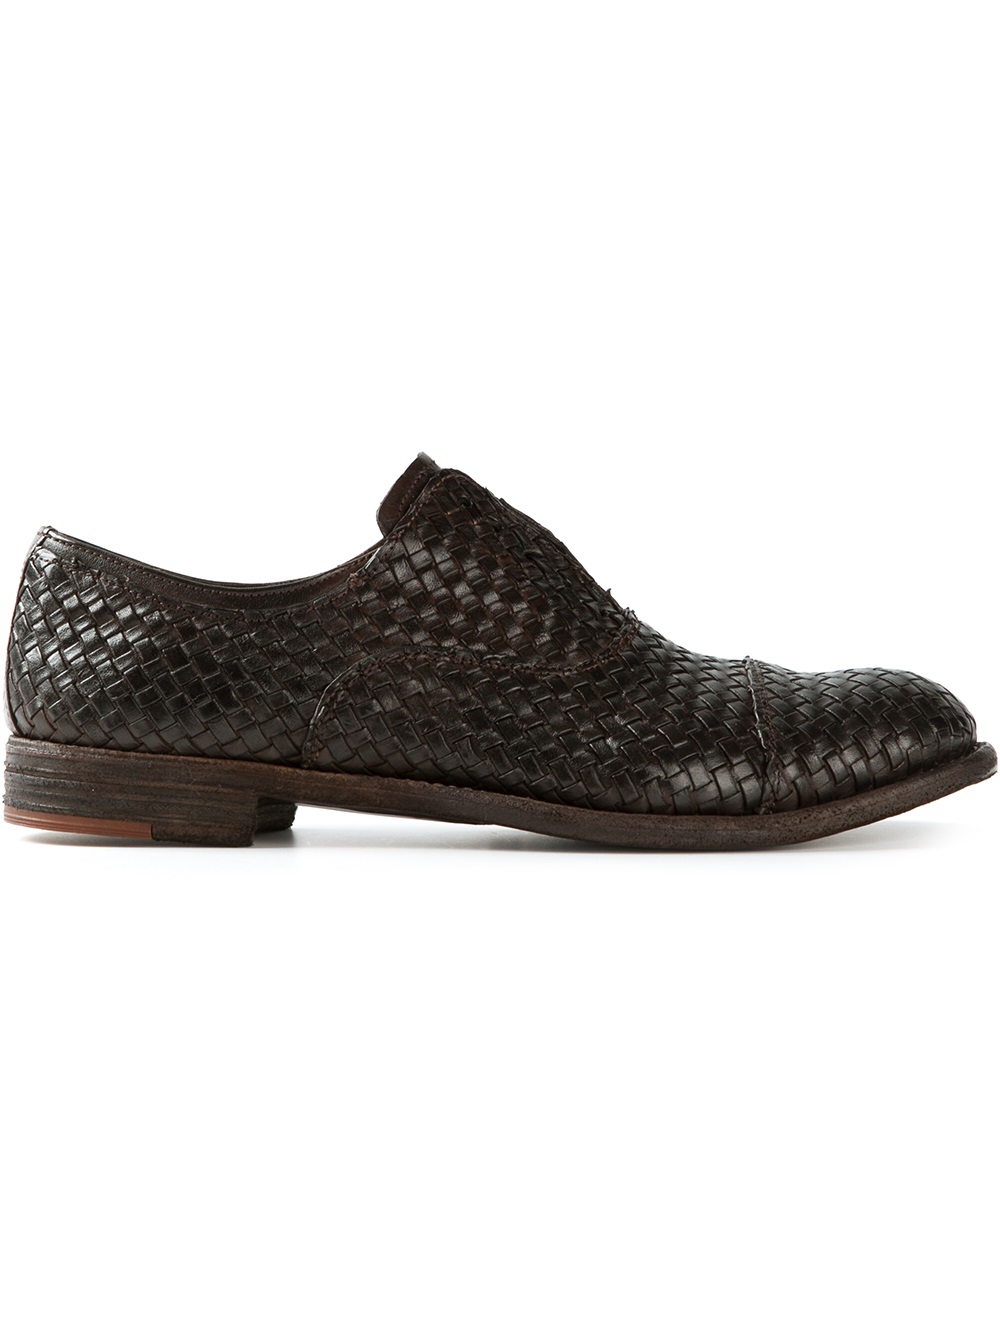 Really Online woven oxford shoes - Grey Officine Creative 100% Guaranteed For Sale Low Cost Cheap Price h40alprk